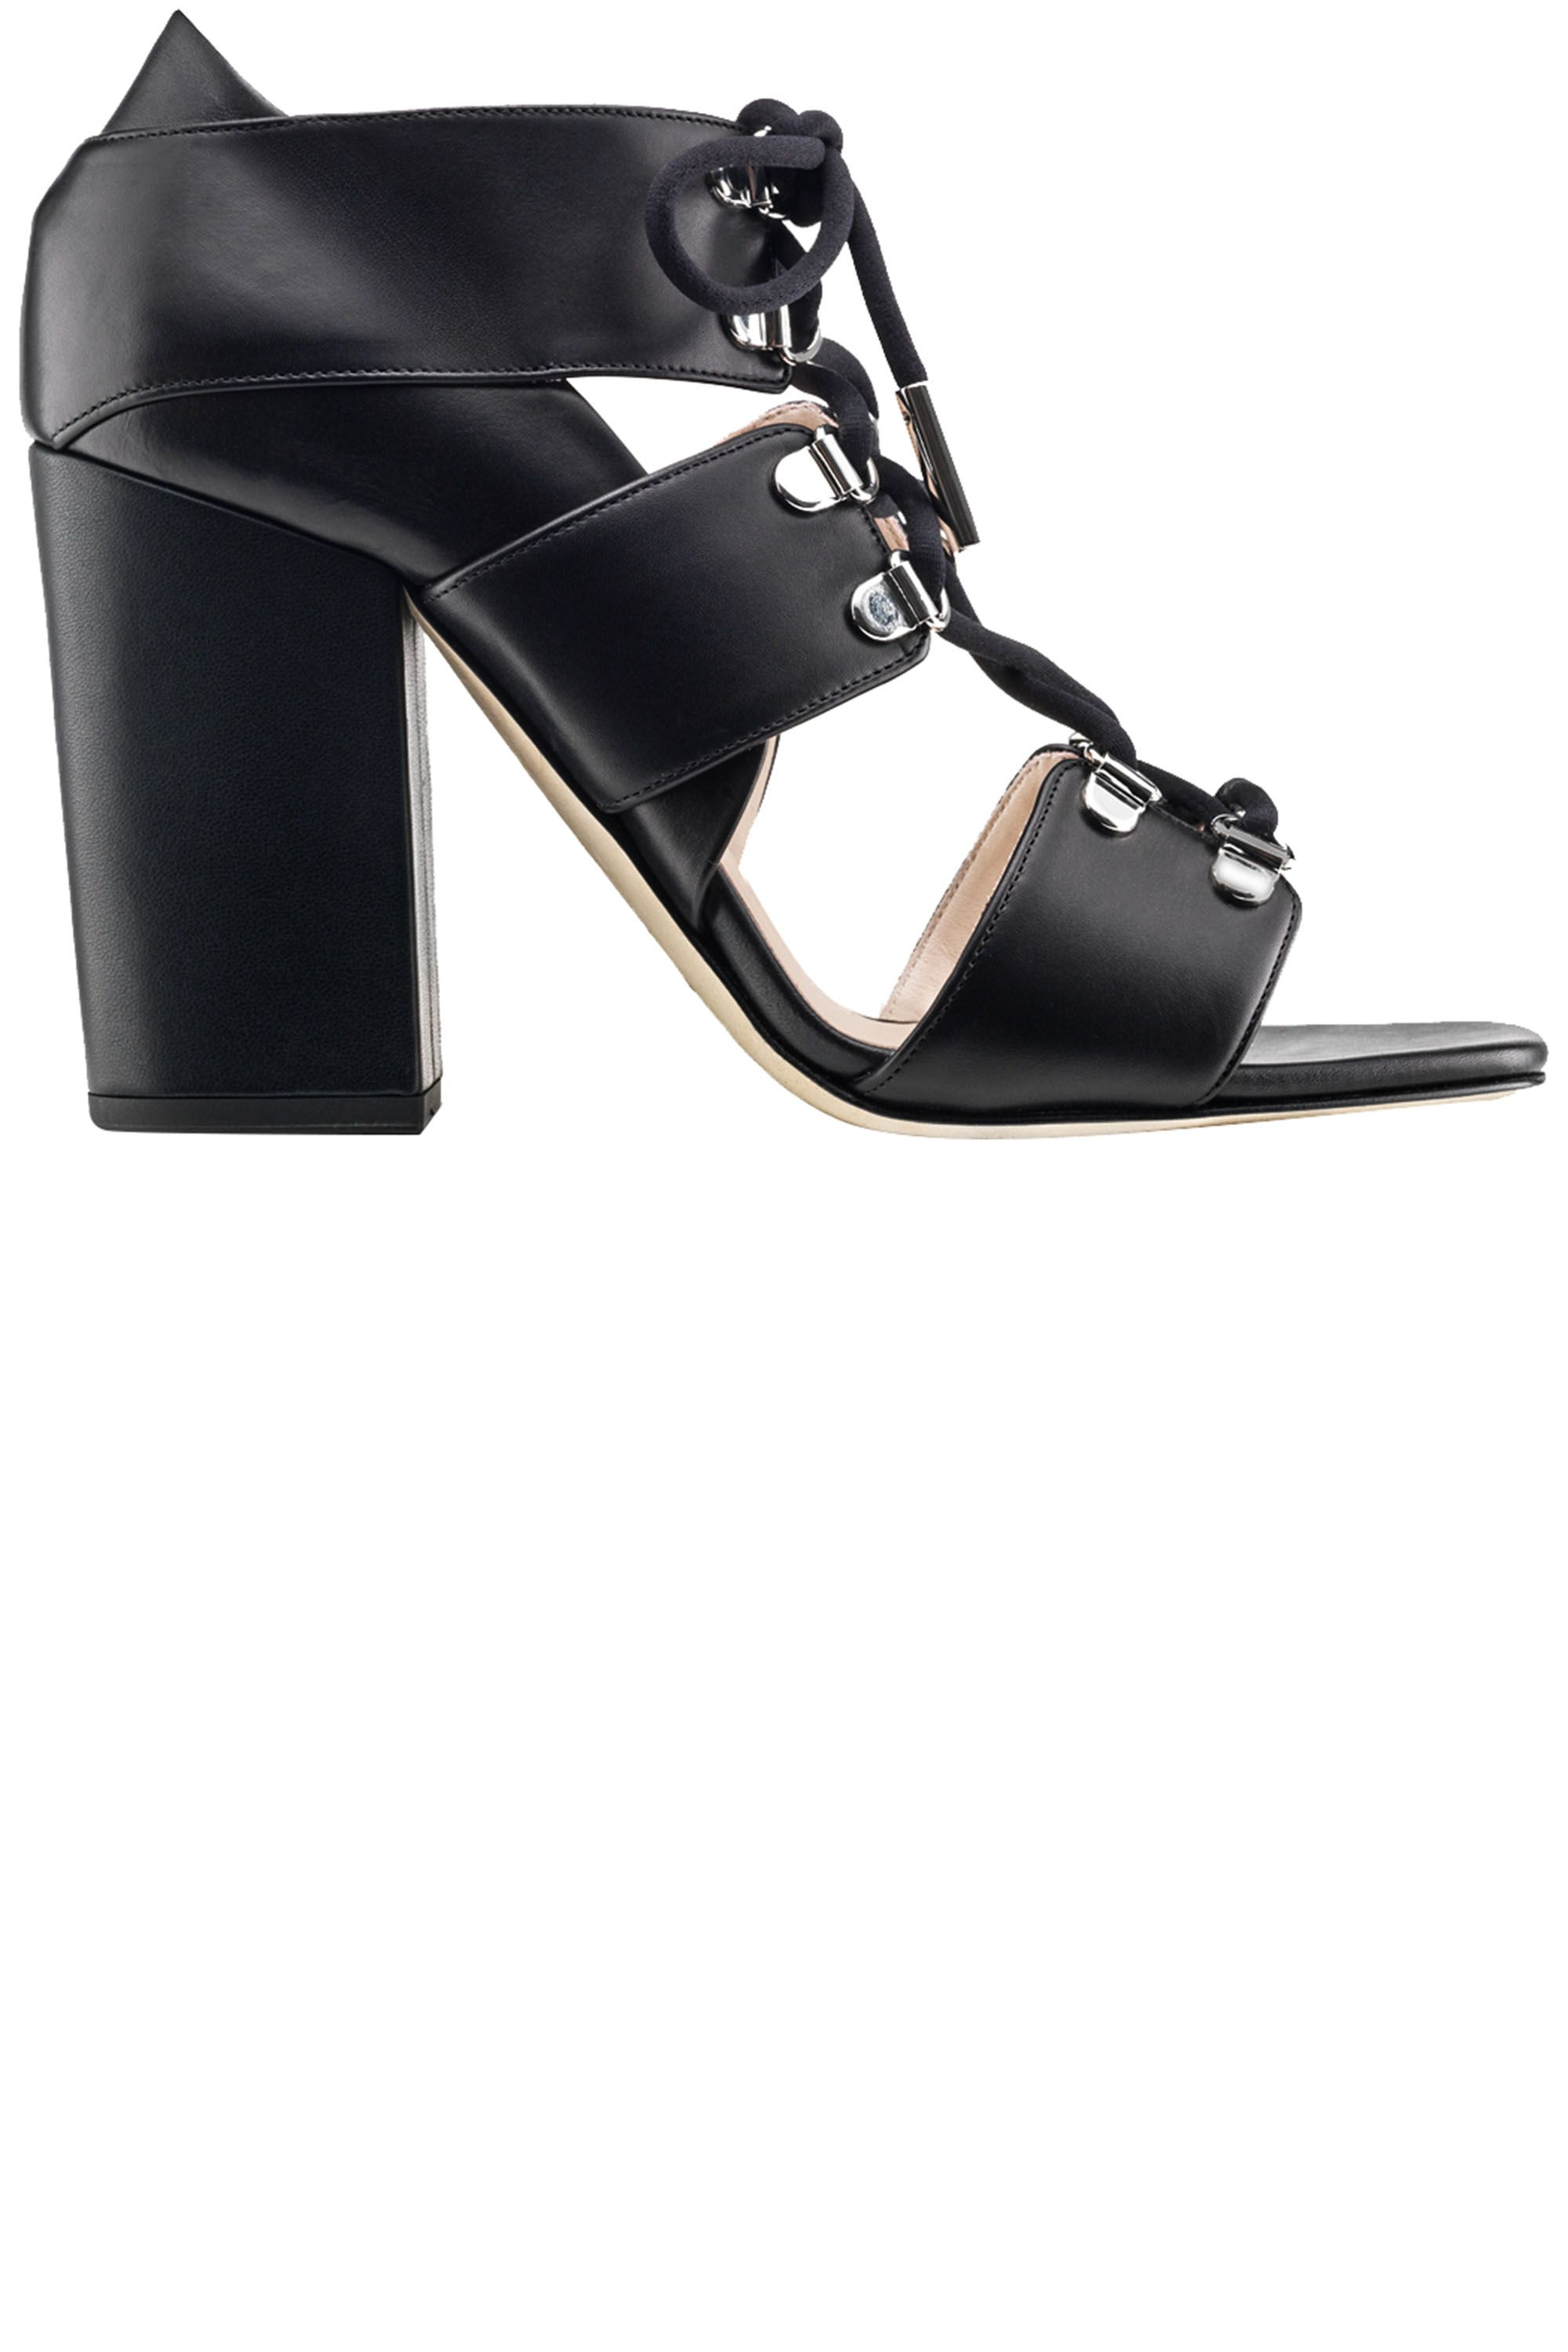 "<p><strong>Christopher Kane </strong>sandals, $685, <a href=""http://www.fwrd.com/"" target=""_blank"">fwrd.com</a>.</p>"